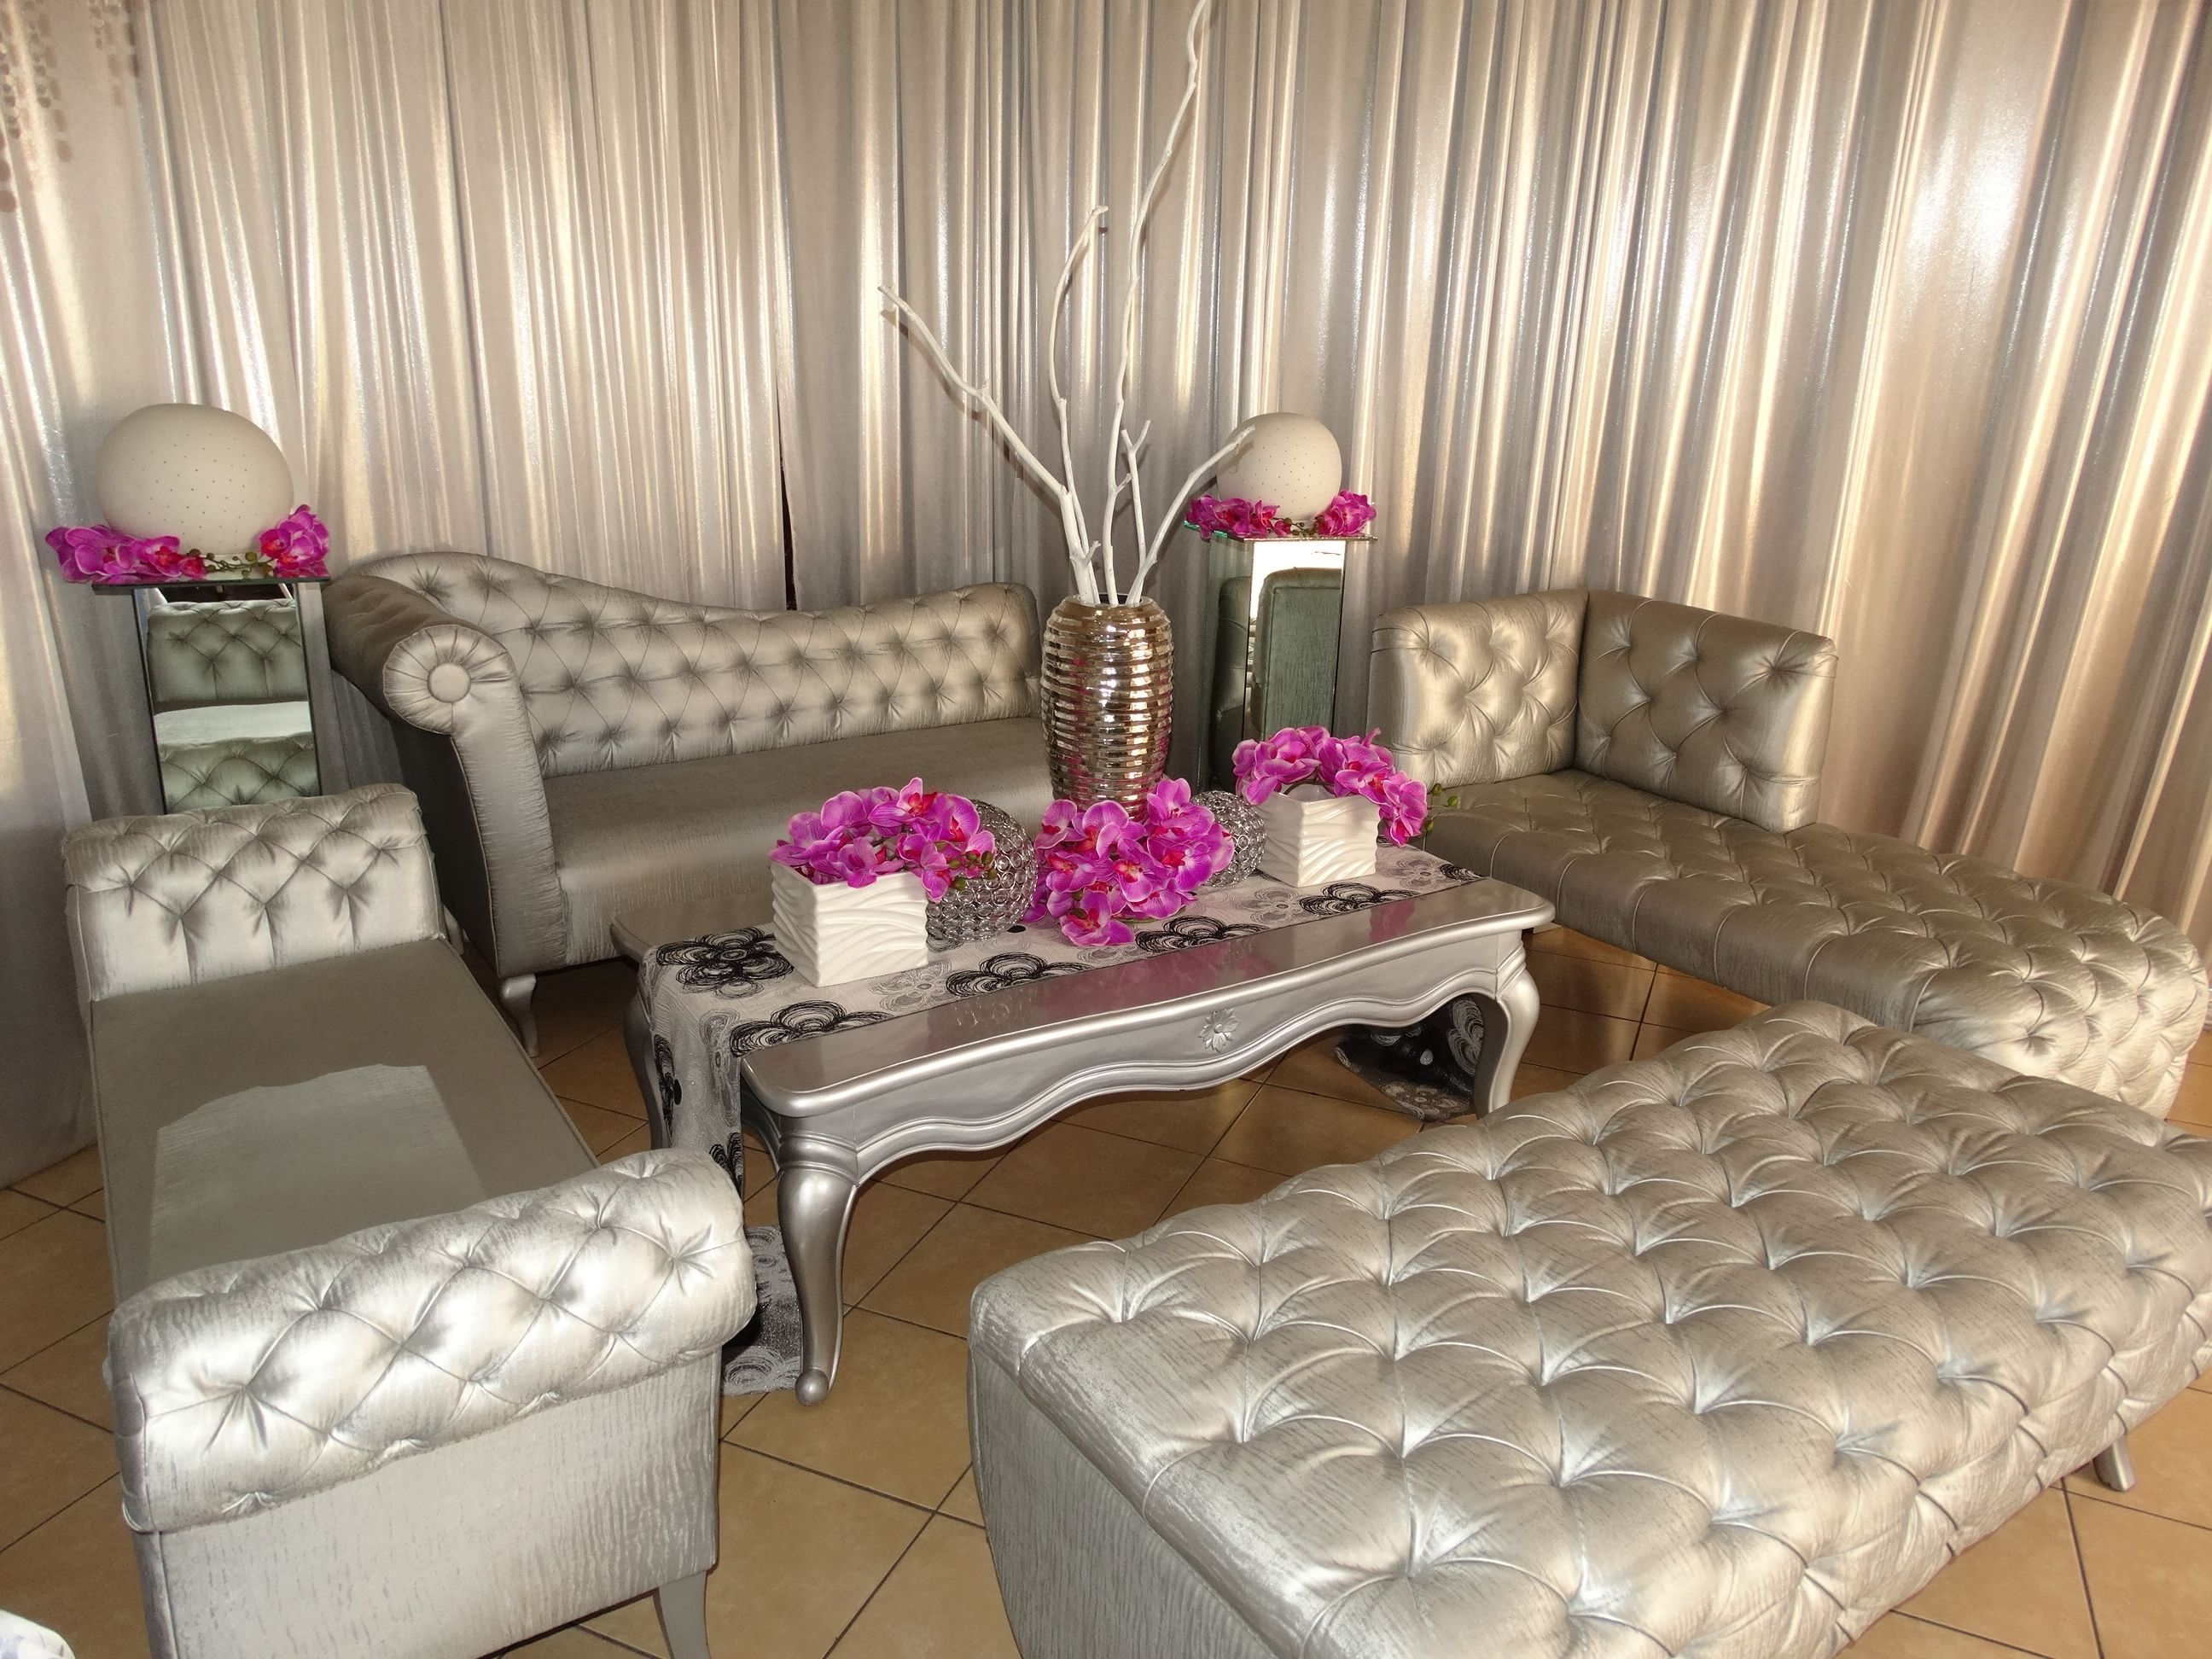 Vip these de lite ful orchid designs include 9 designs which can be - Modernas Salas Lounge En Renta